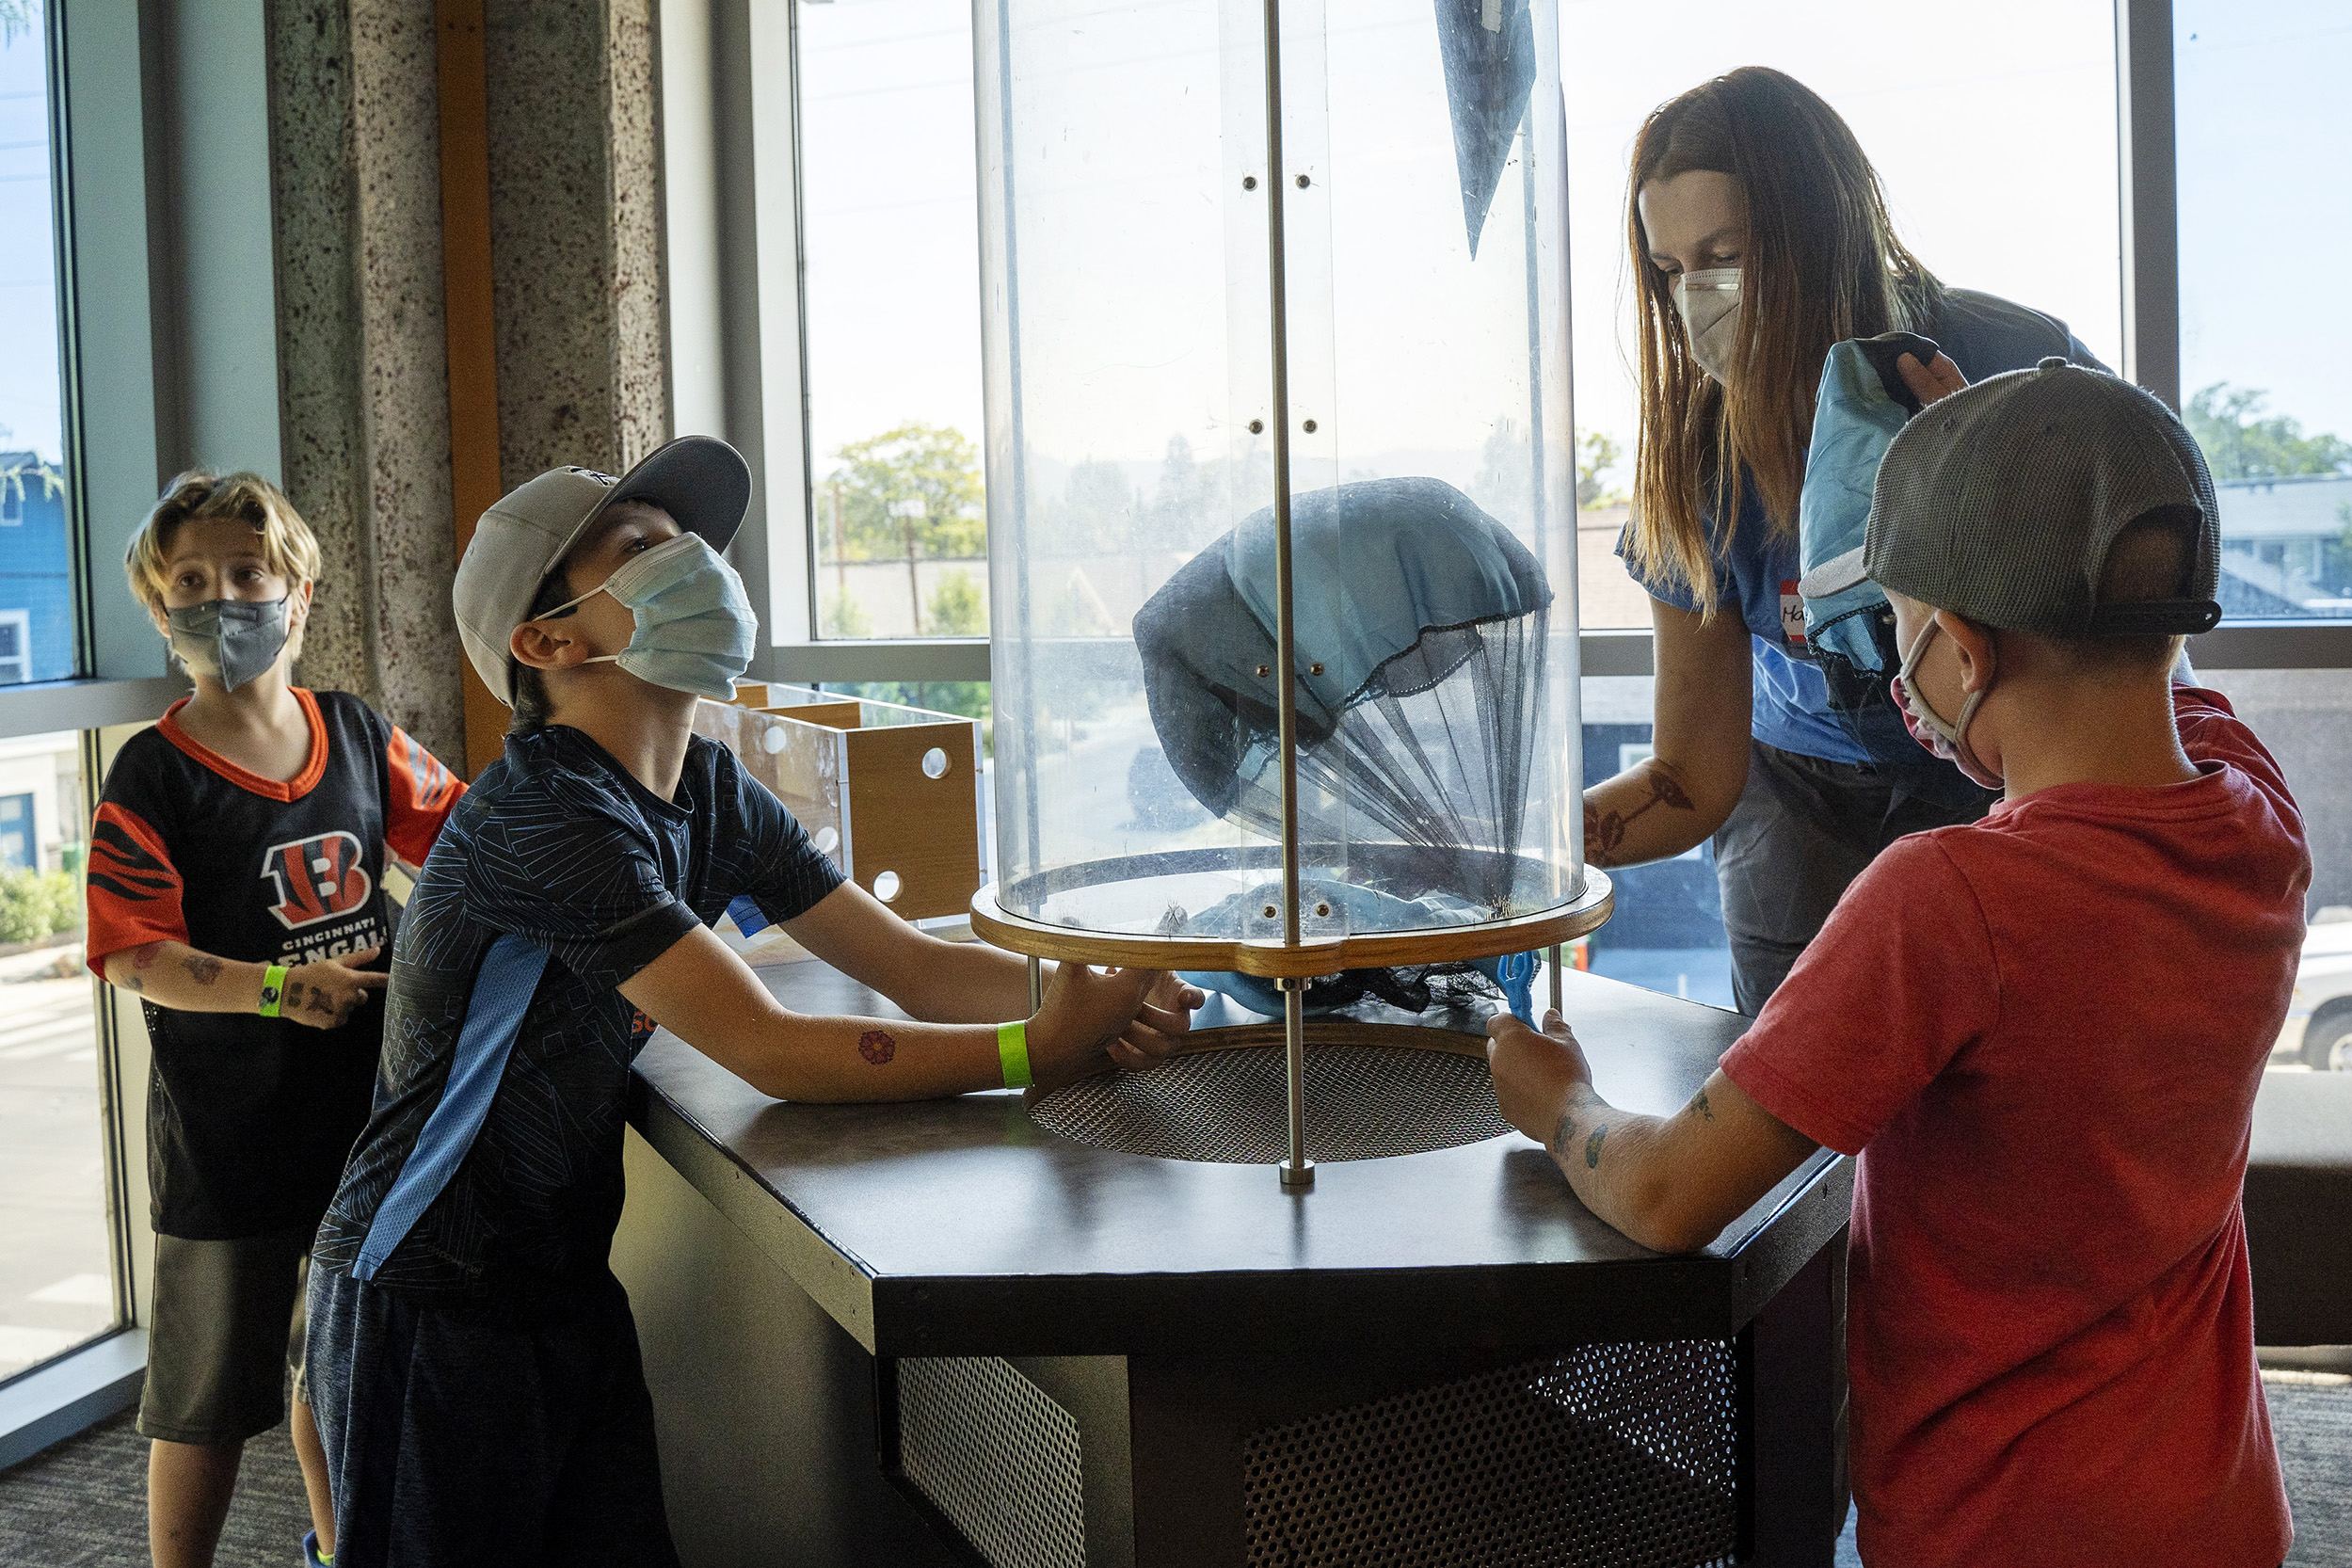 Camp helps children cope with trauma, one natural disaster at a time